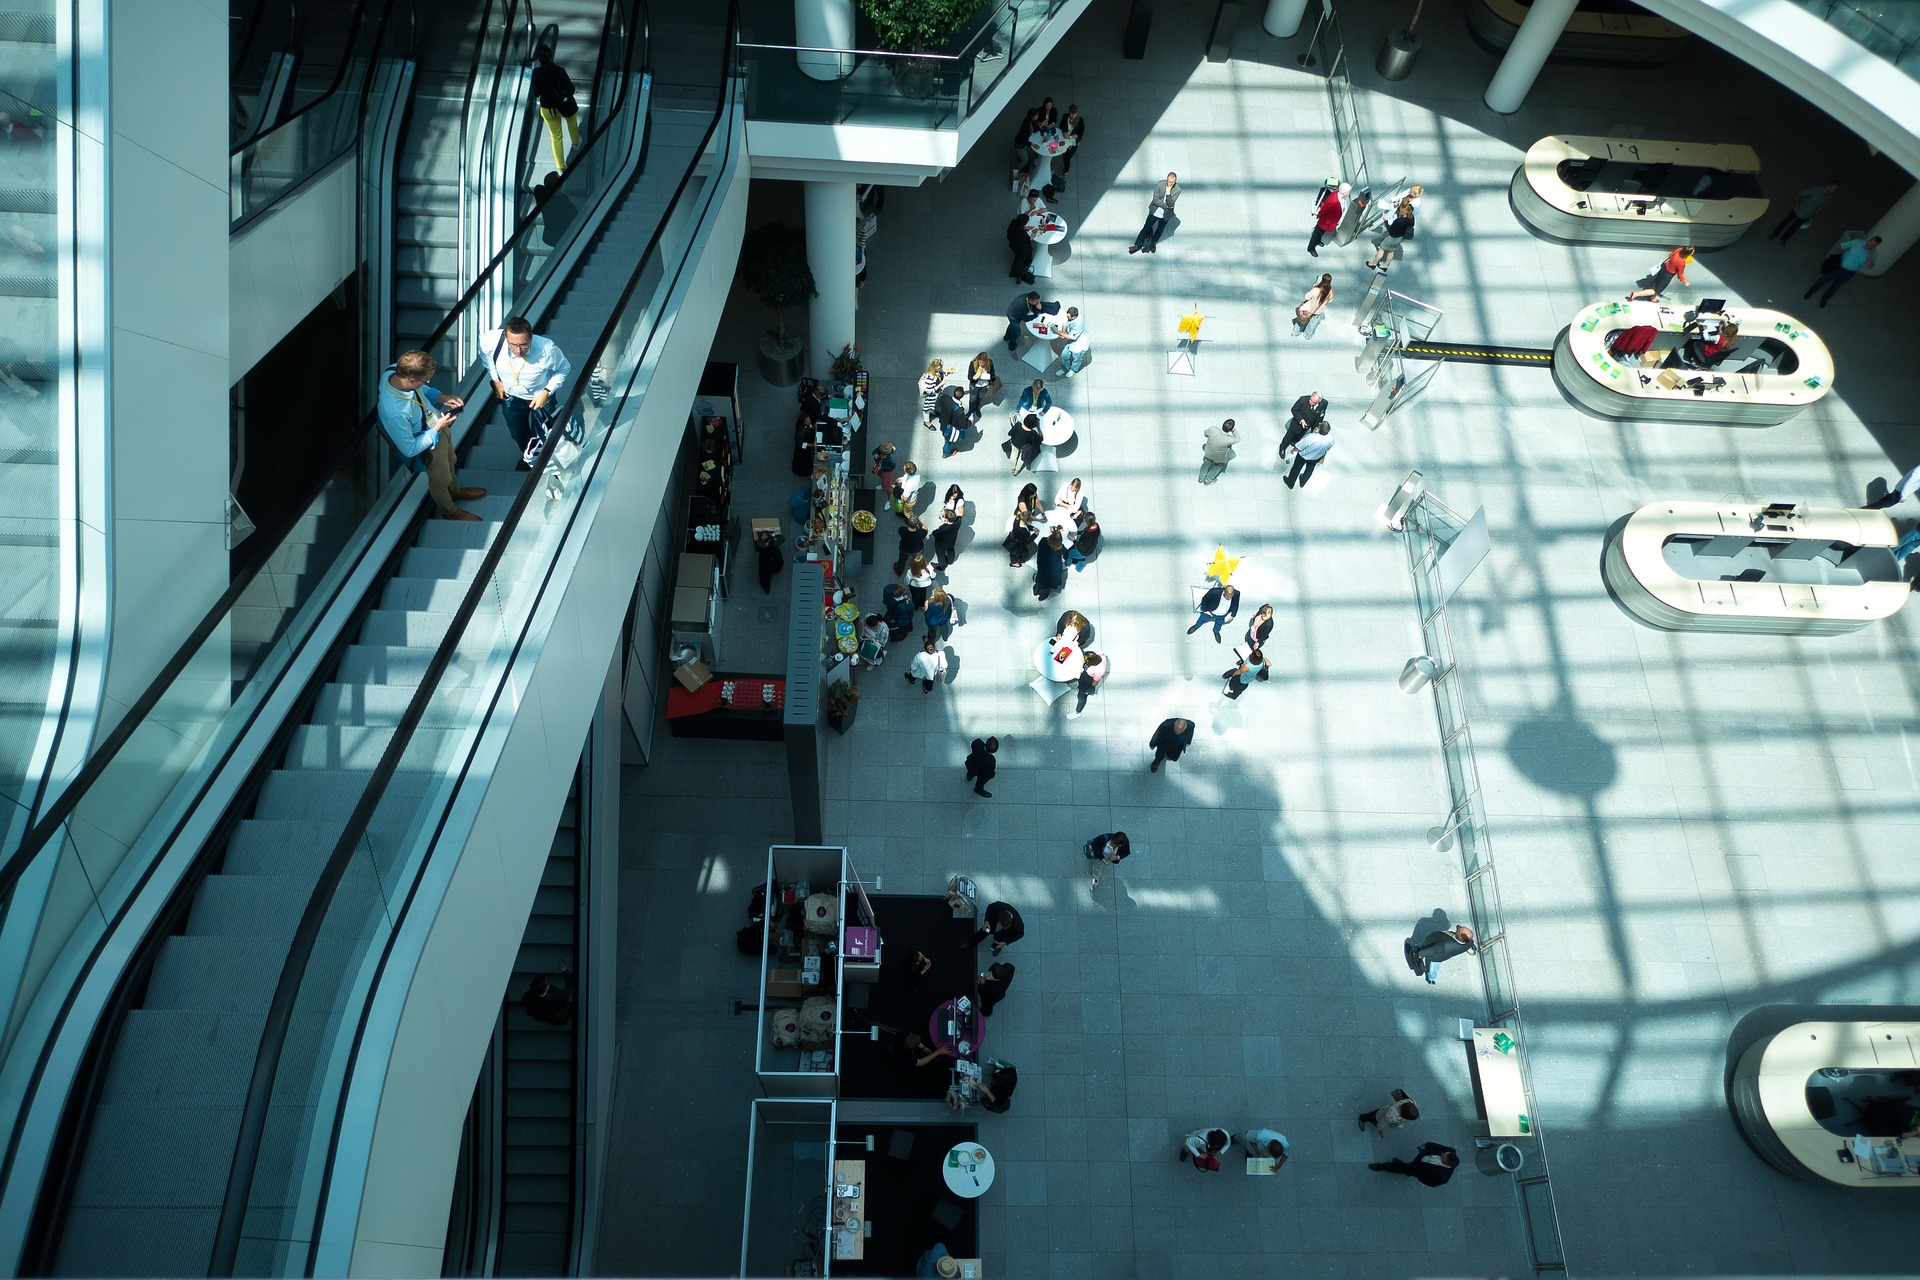 stock image of a convention, view from above of an escalator